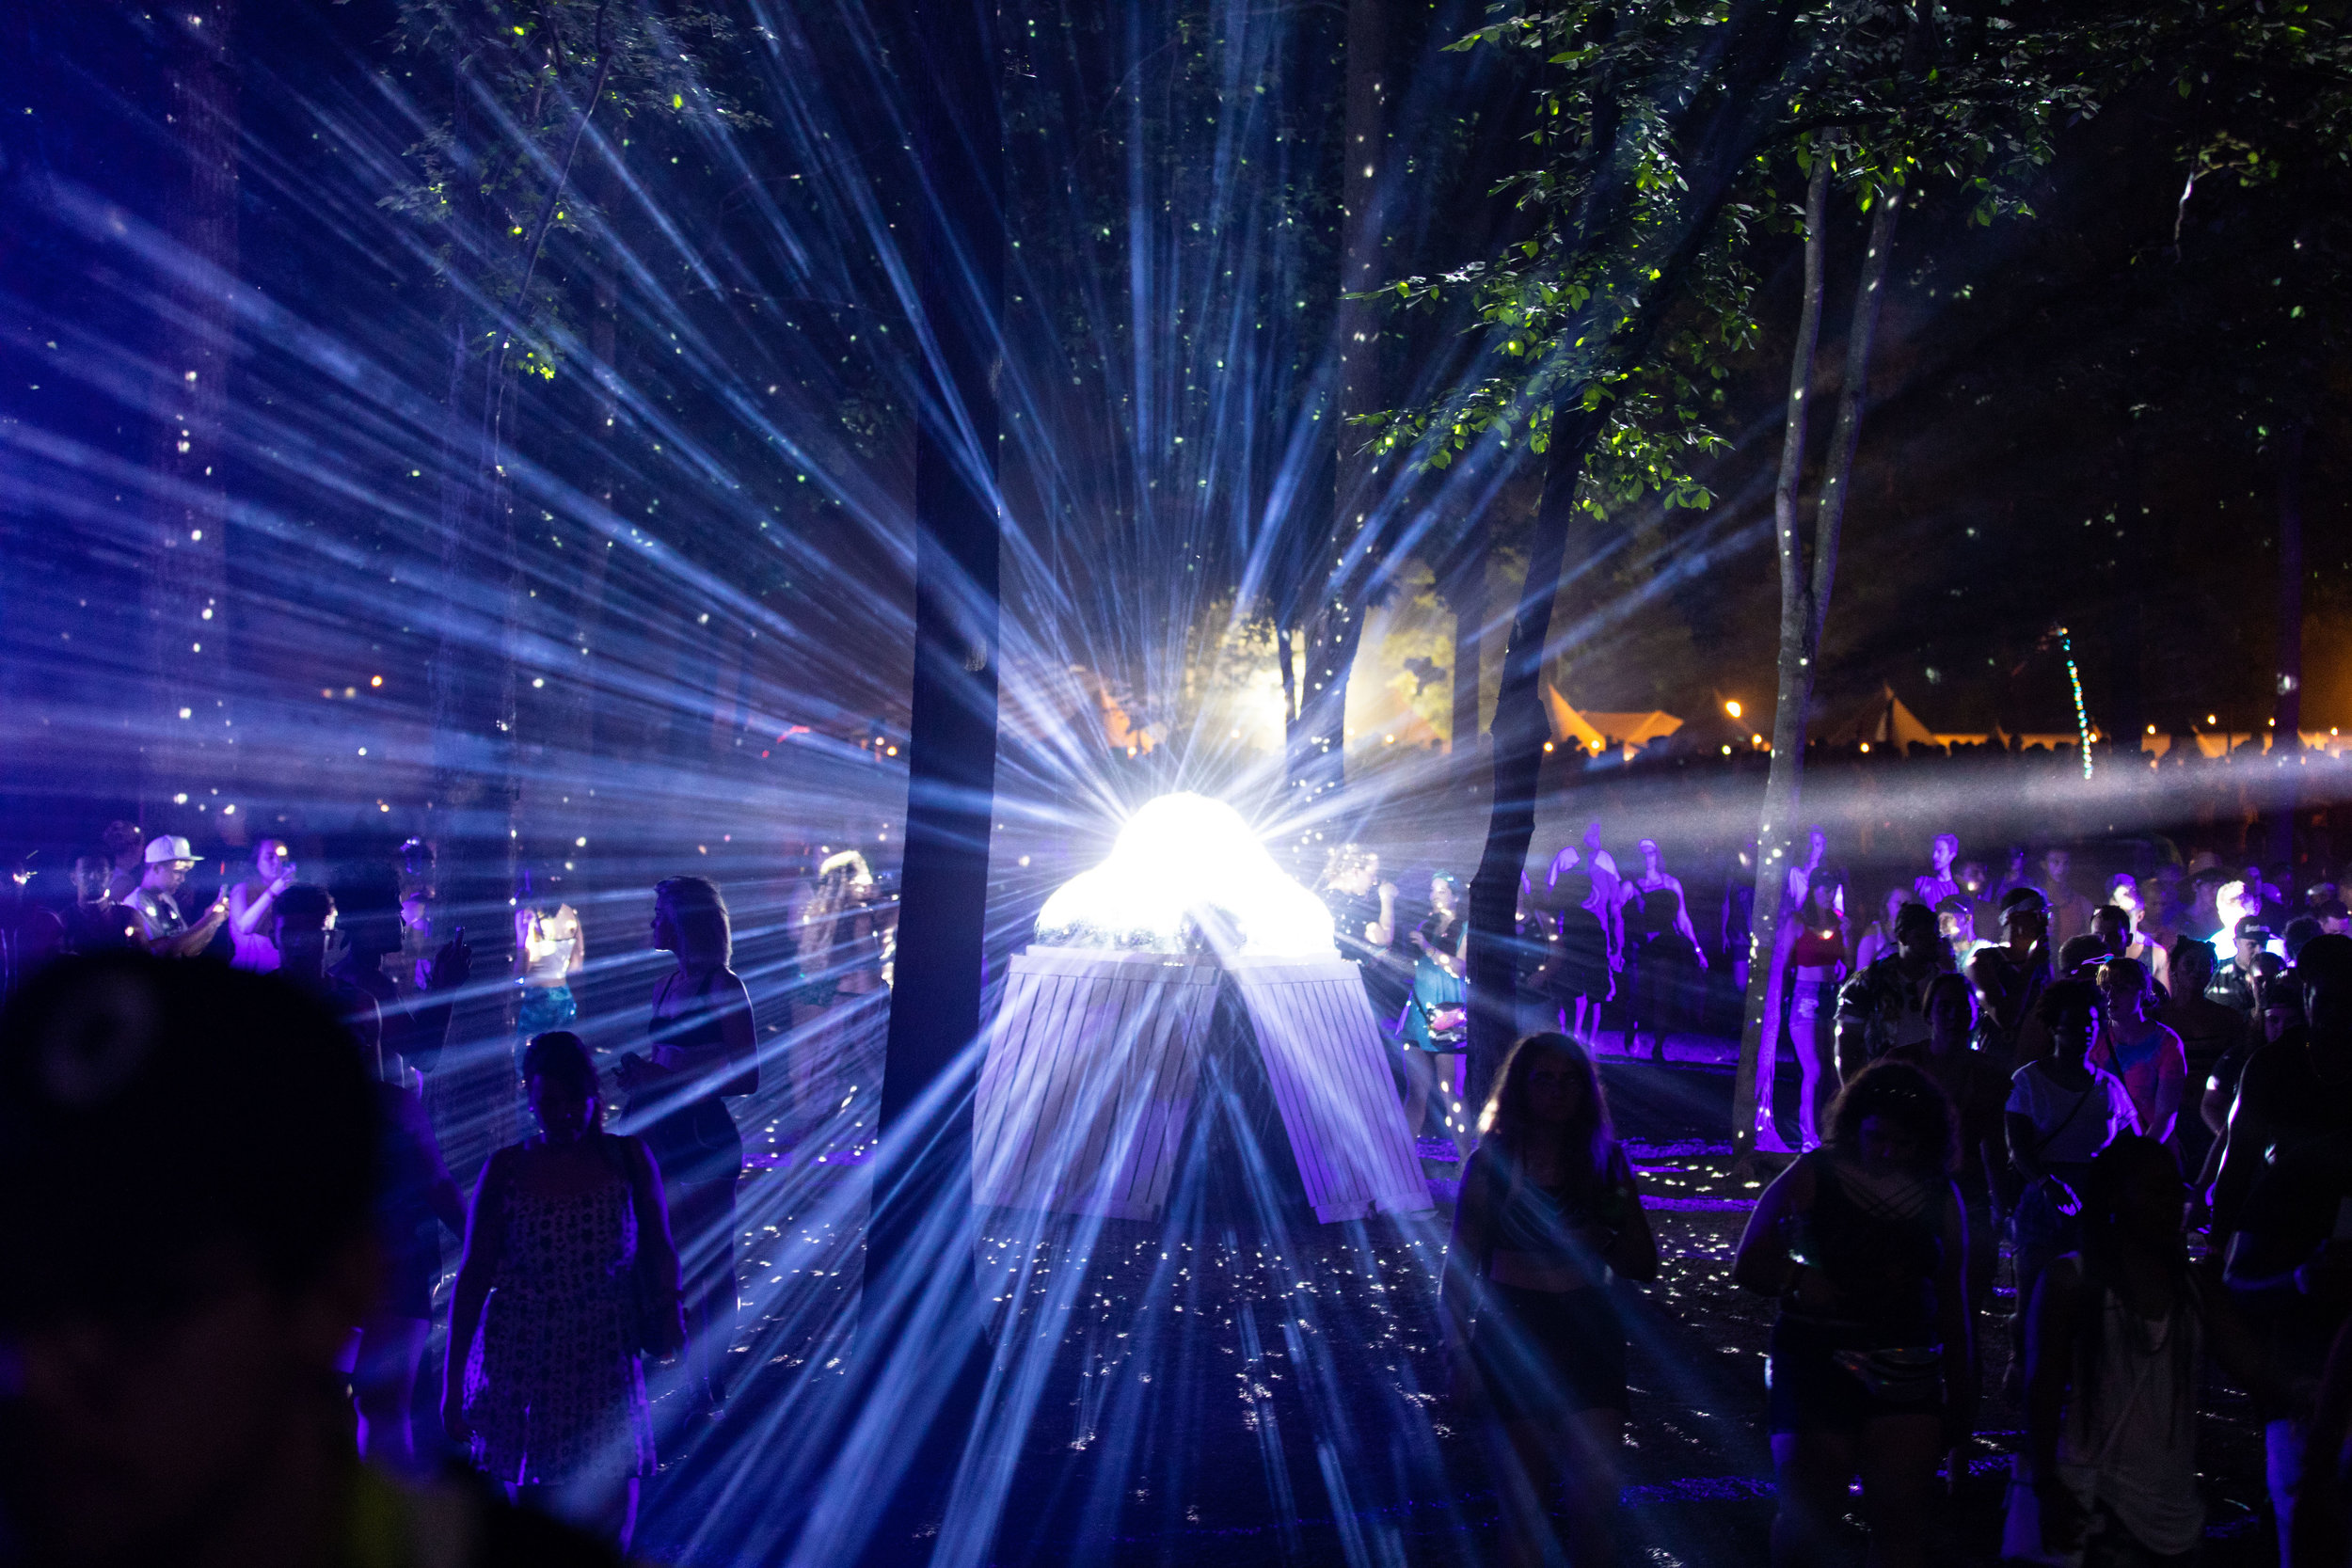 Poulos-Firefly2018-General-Sunday-37.jpg